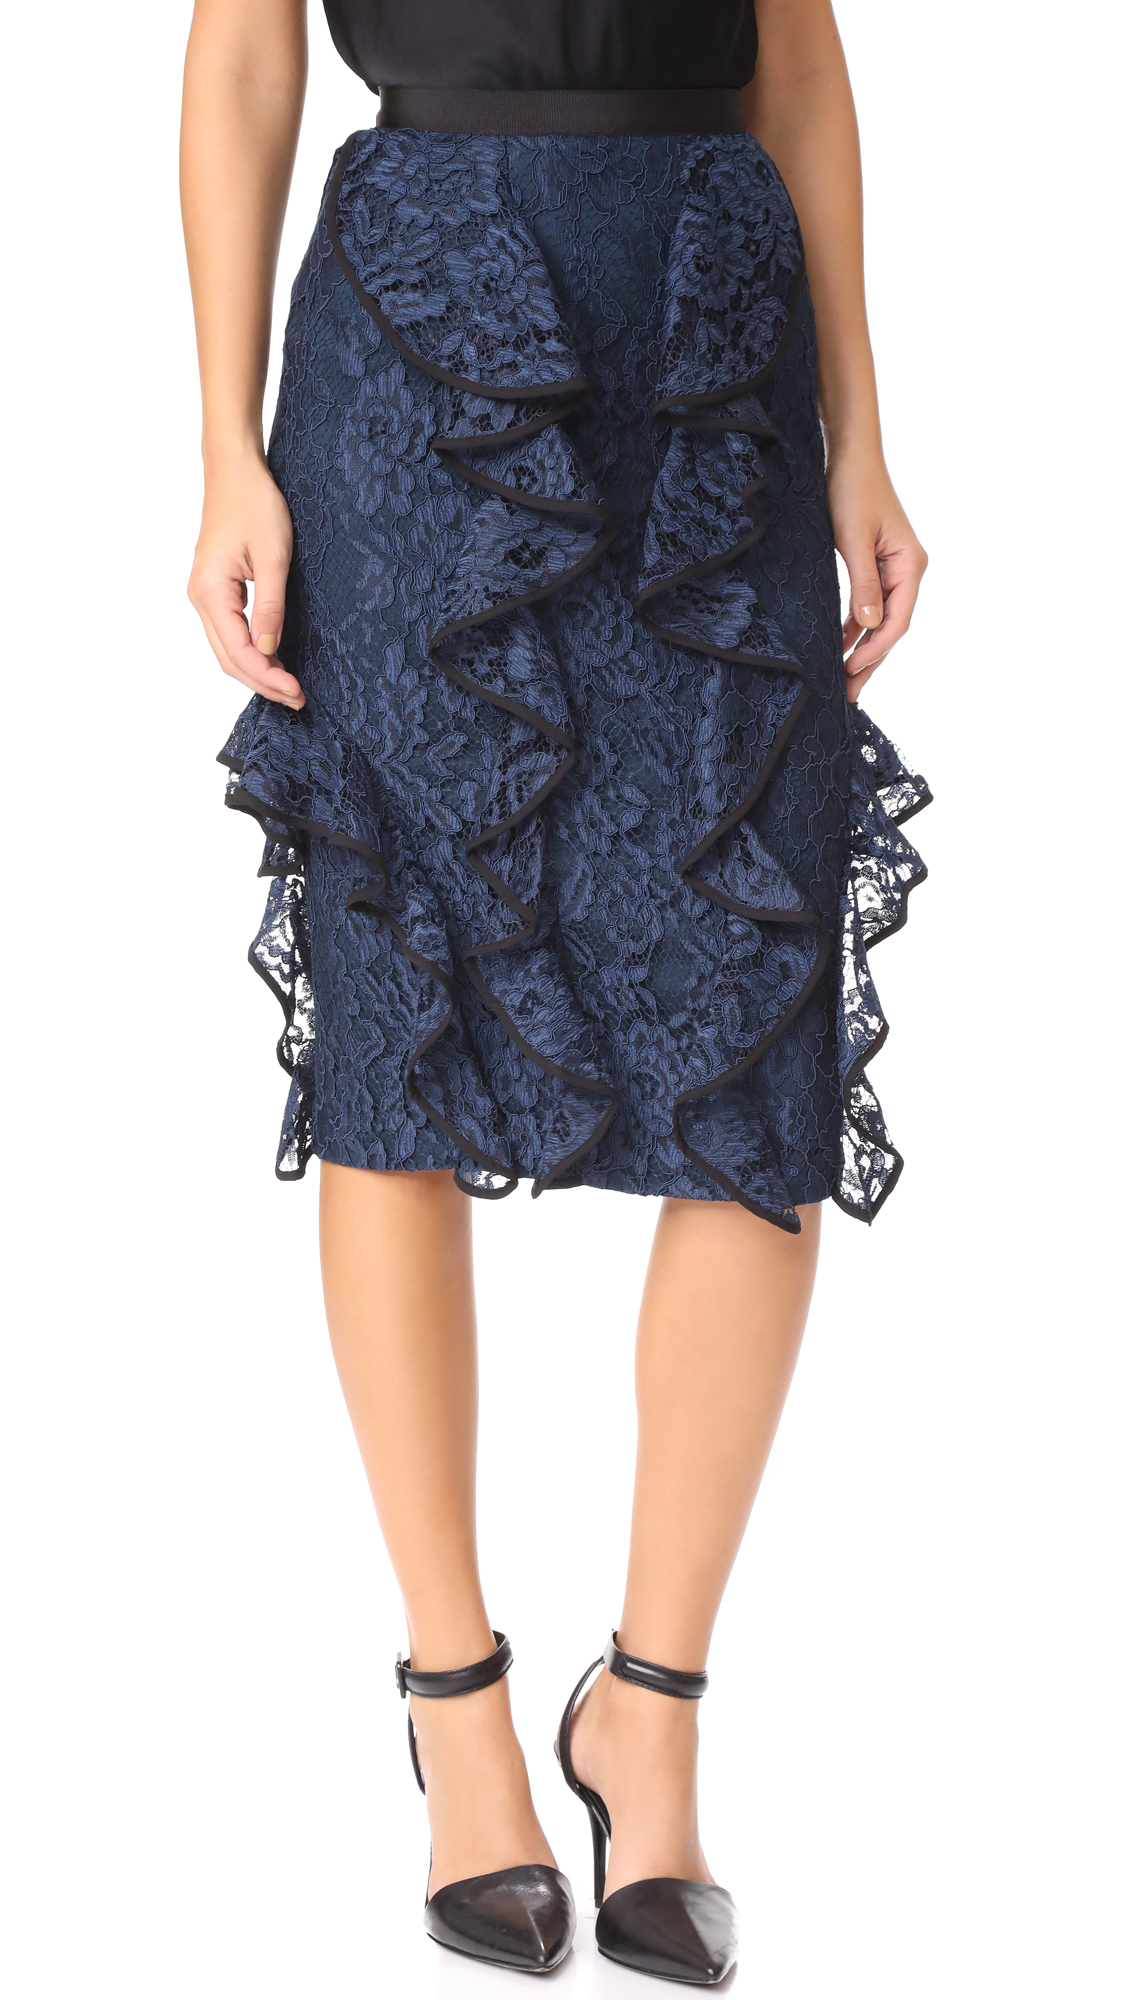 Alexis Jensine Lace Skirt - Navy Lace